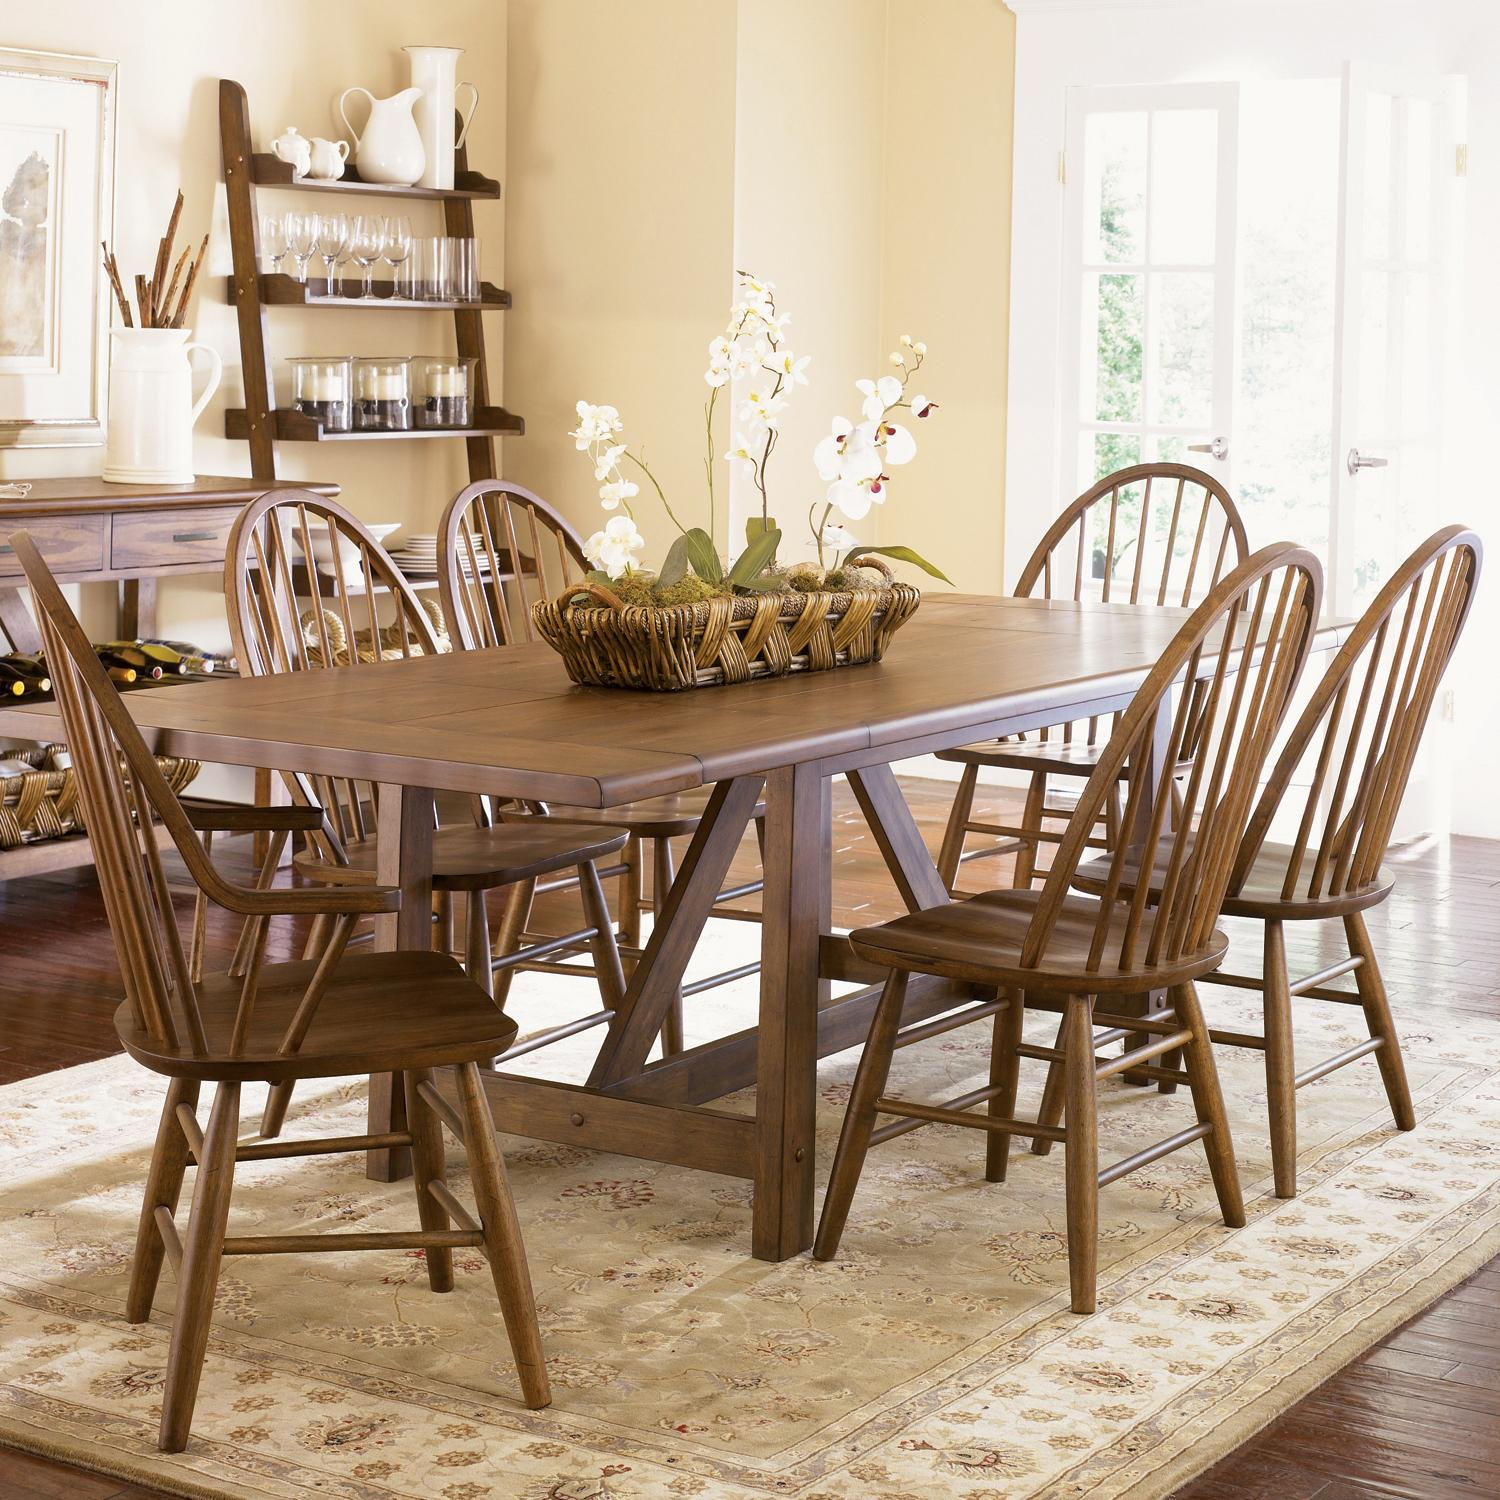 Liberty Furniture Farmhouse  Seven Piece Dining Set - Item Number: 139-T4002+2xC1000A+4xC1000S